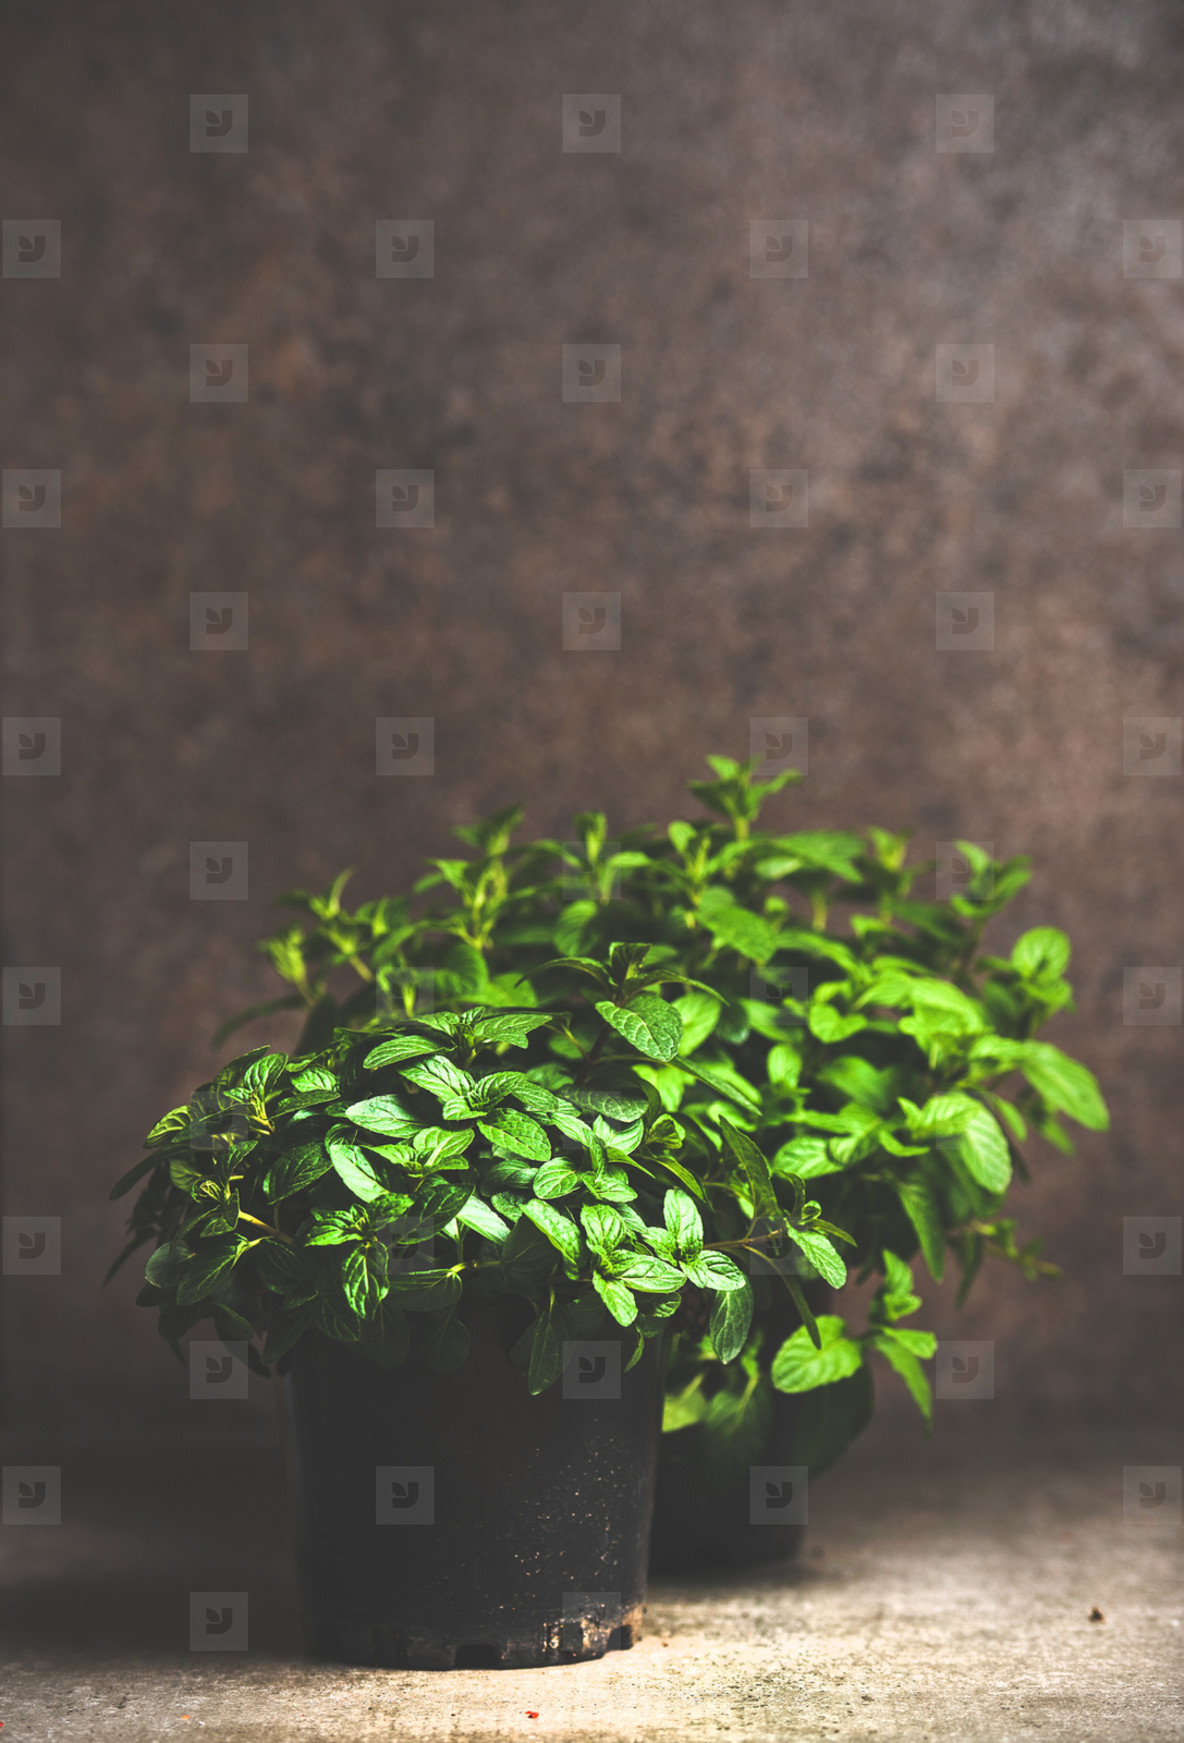 Fresh mint growing in pots over concrete table  copy space